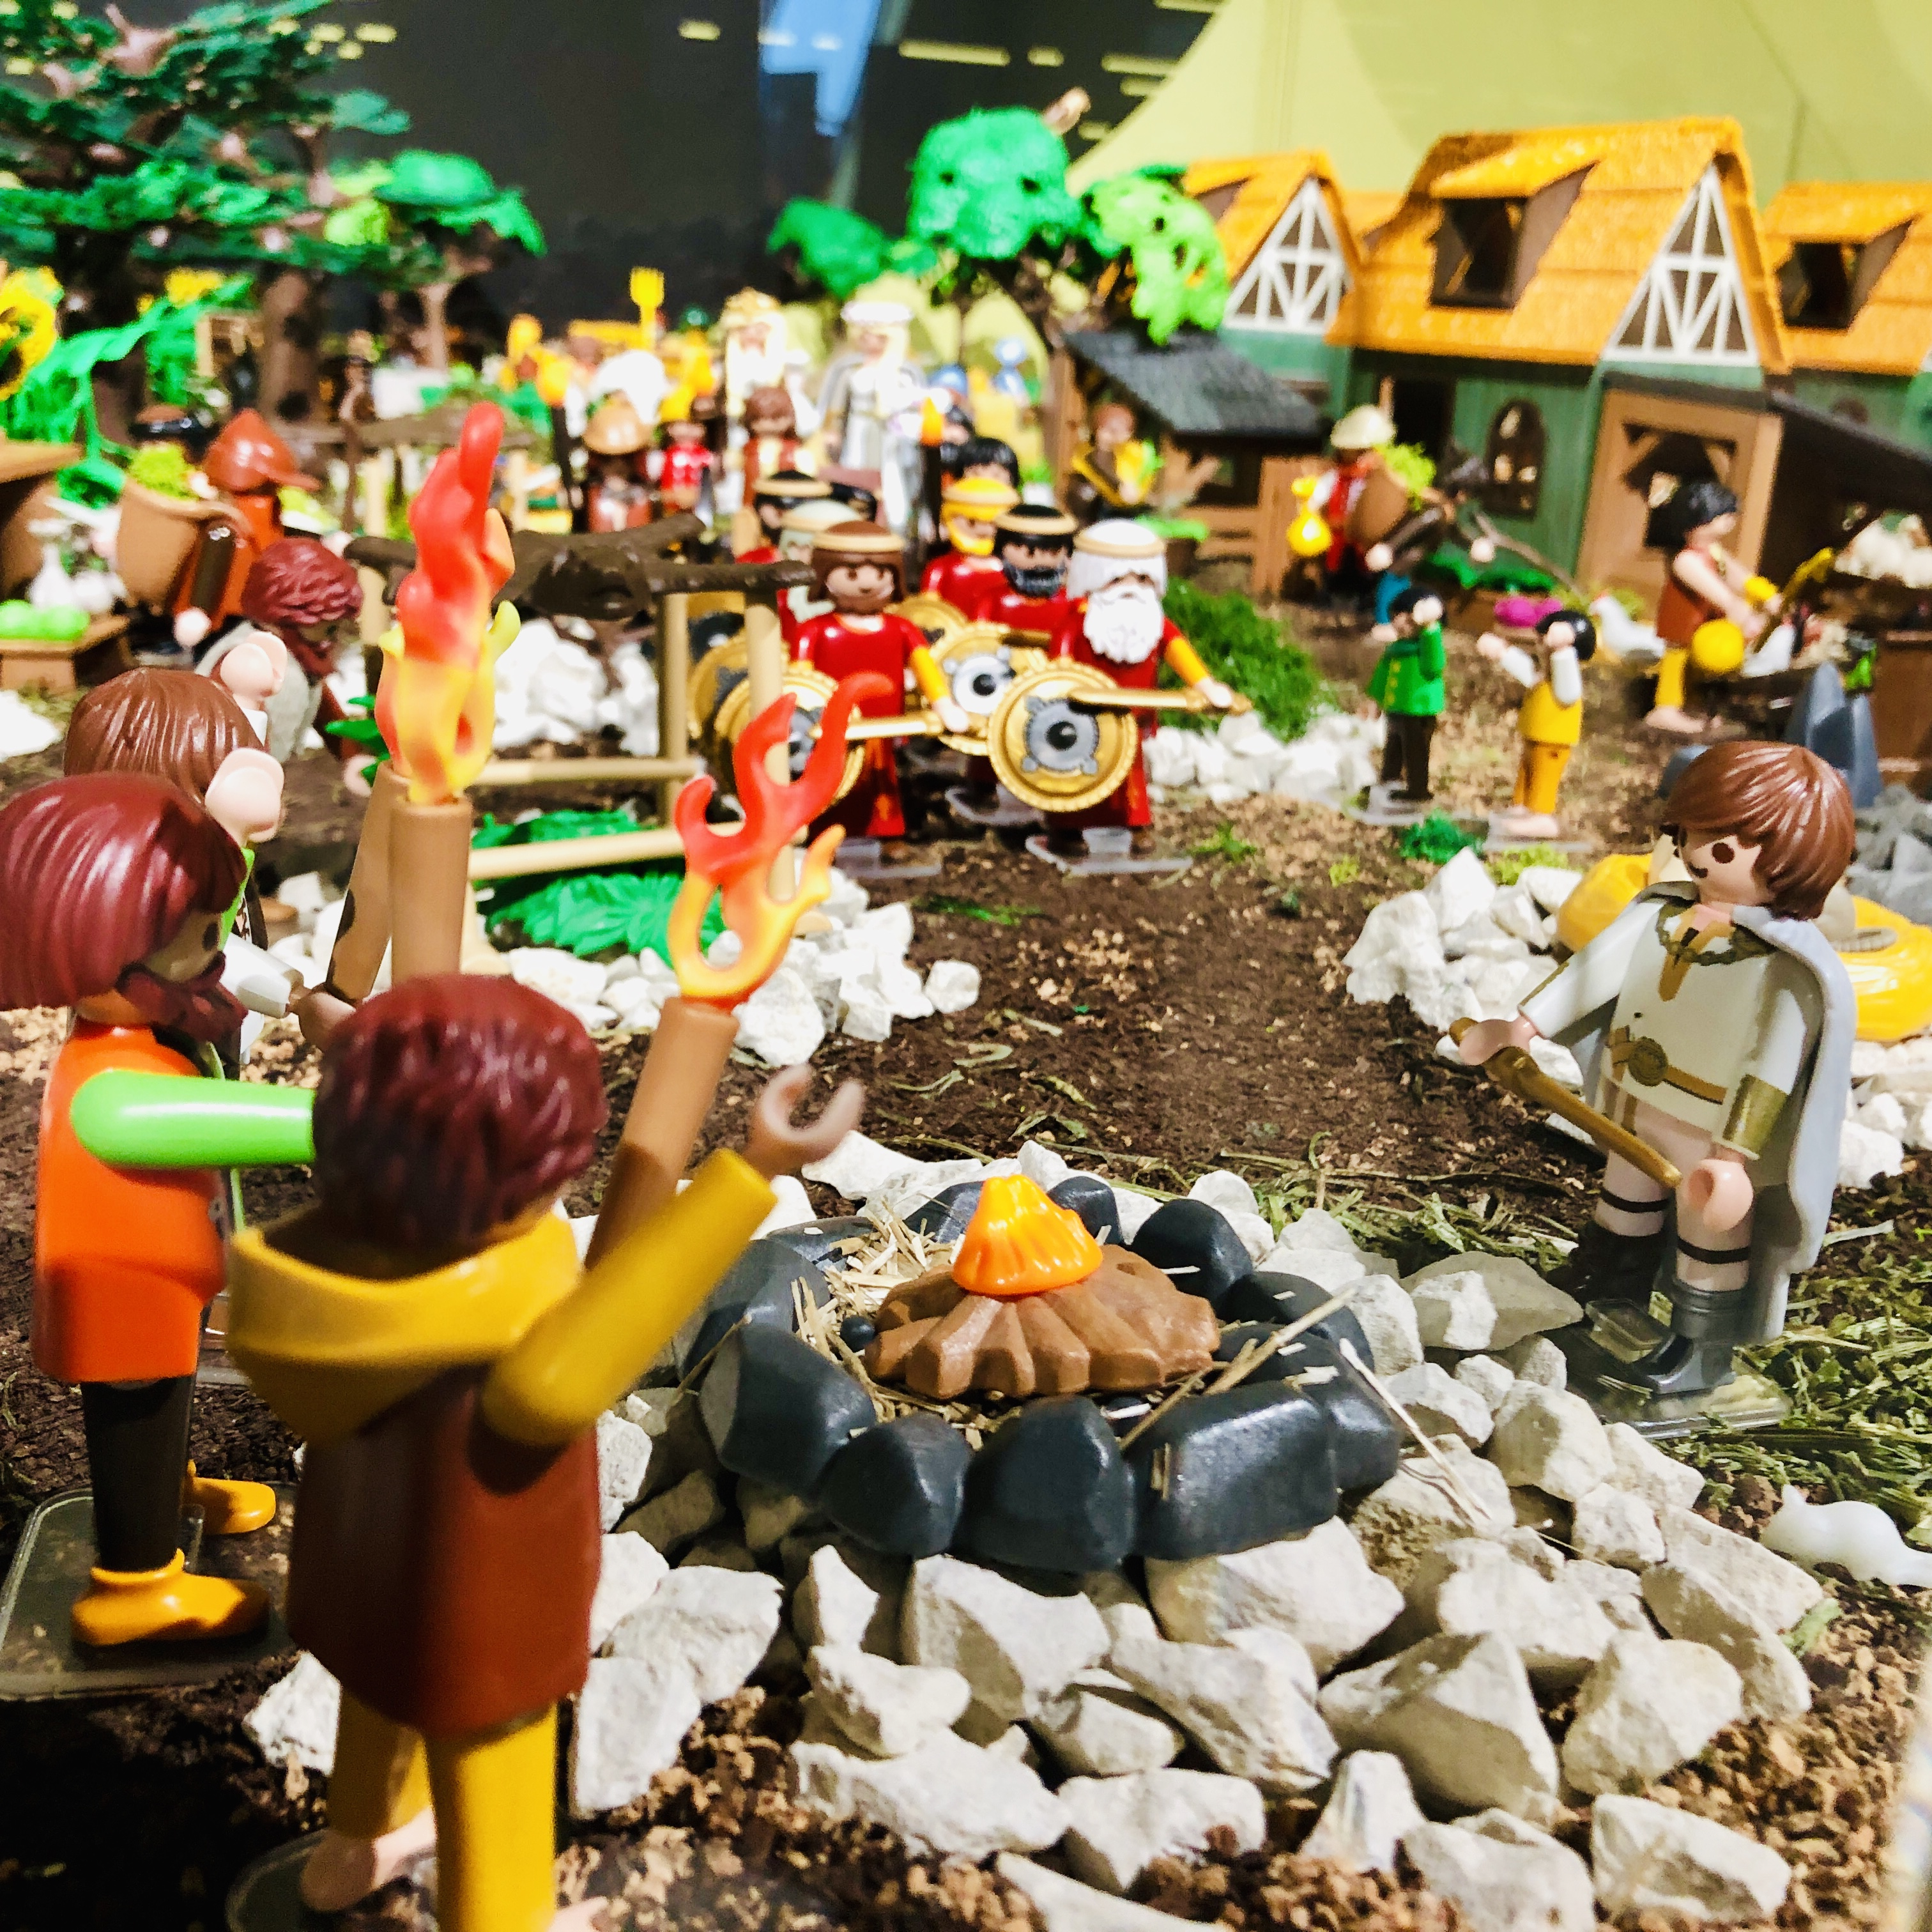 Playmobil Landschaft